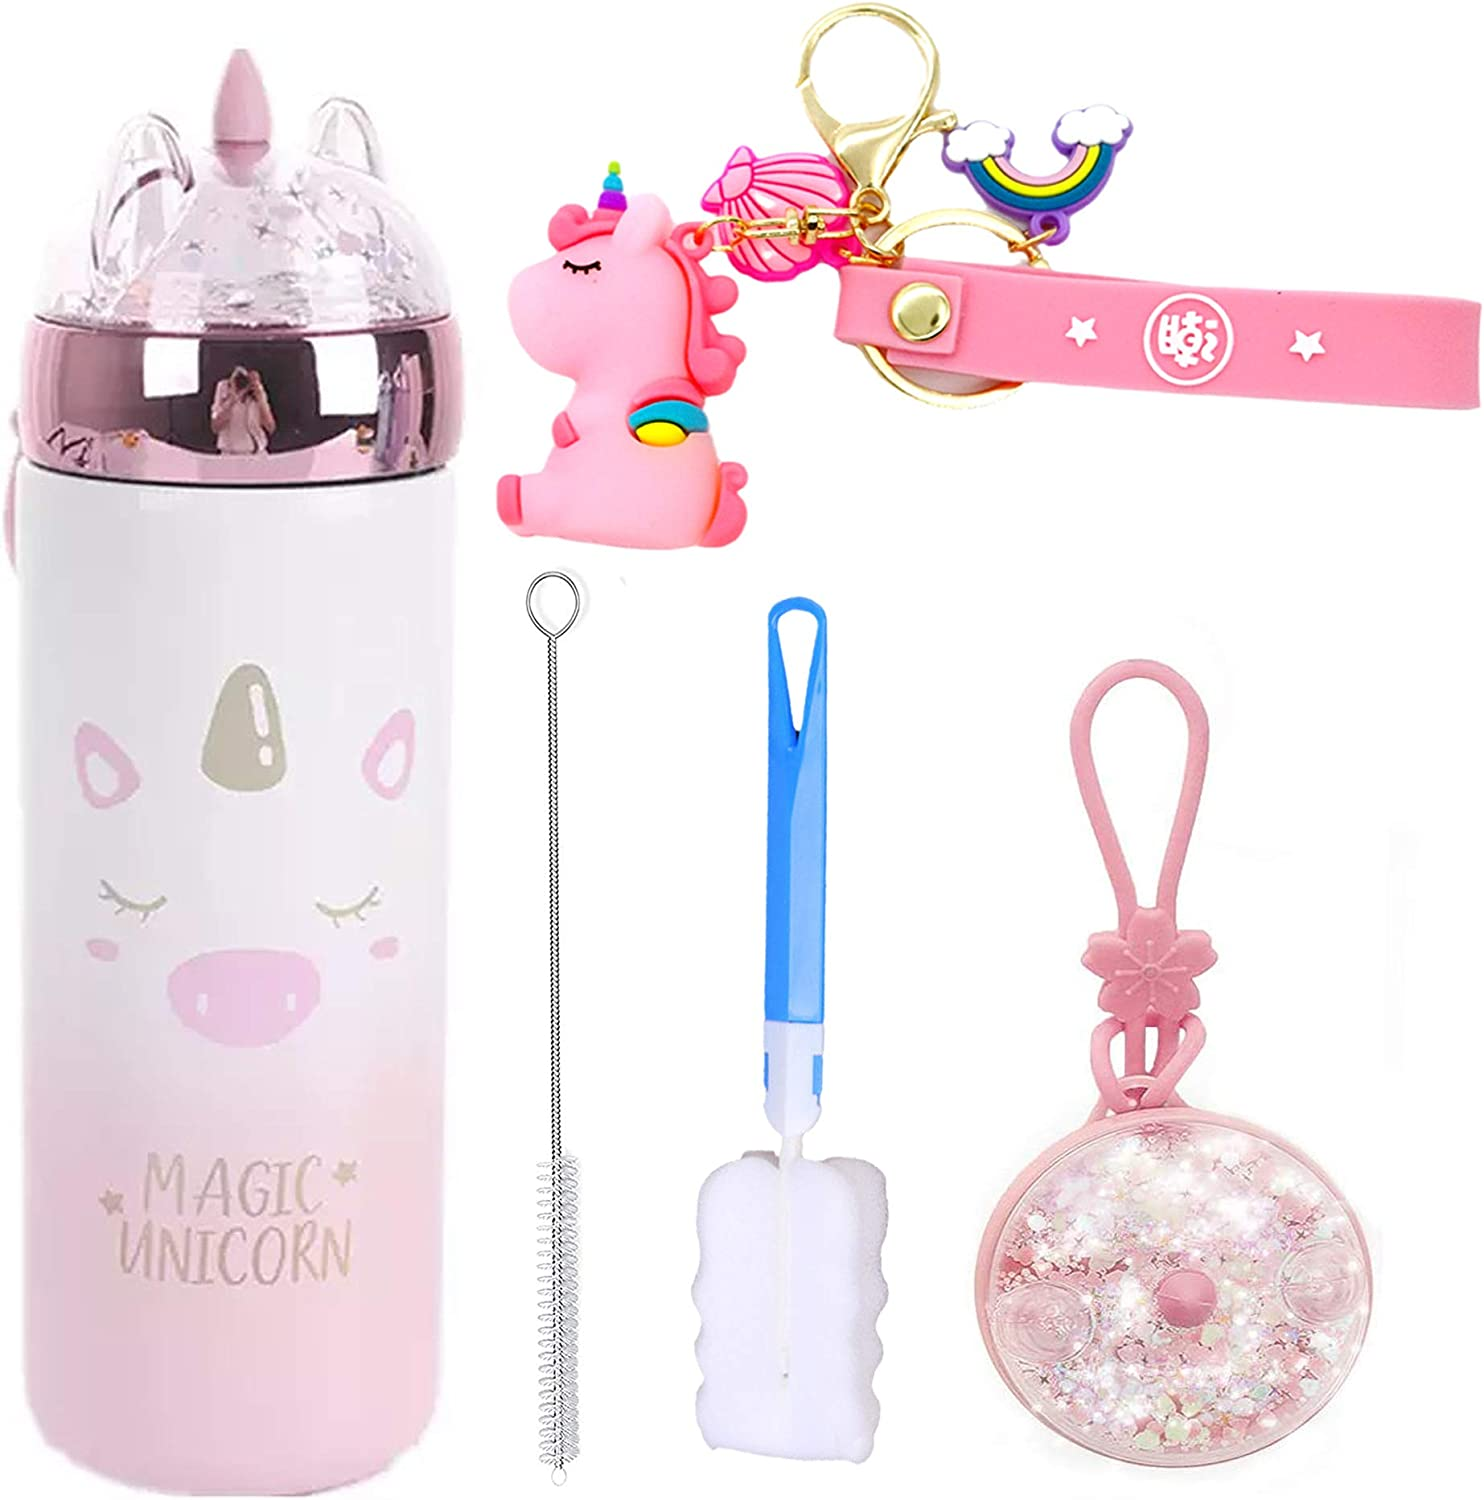 Unicorn Water Bottle Sparkling Glitter Stainless SteelThermos for Hot Drinkings Double Wall Vacuum Thermos Kids Water Bottle Unicorn Gifts for girl BPA Free (A pink unicorn, 330ml)